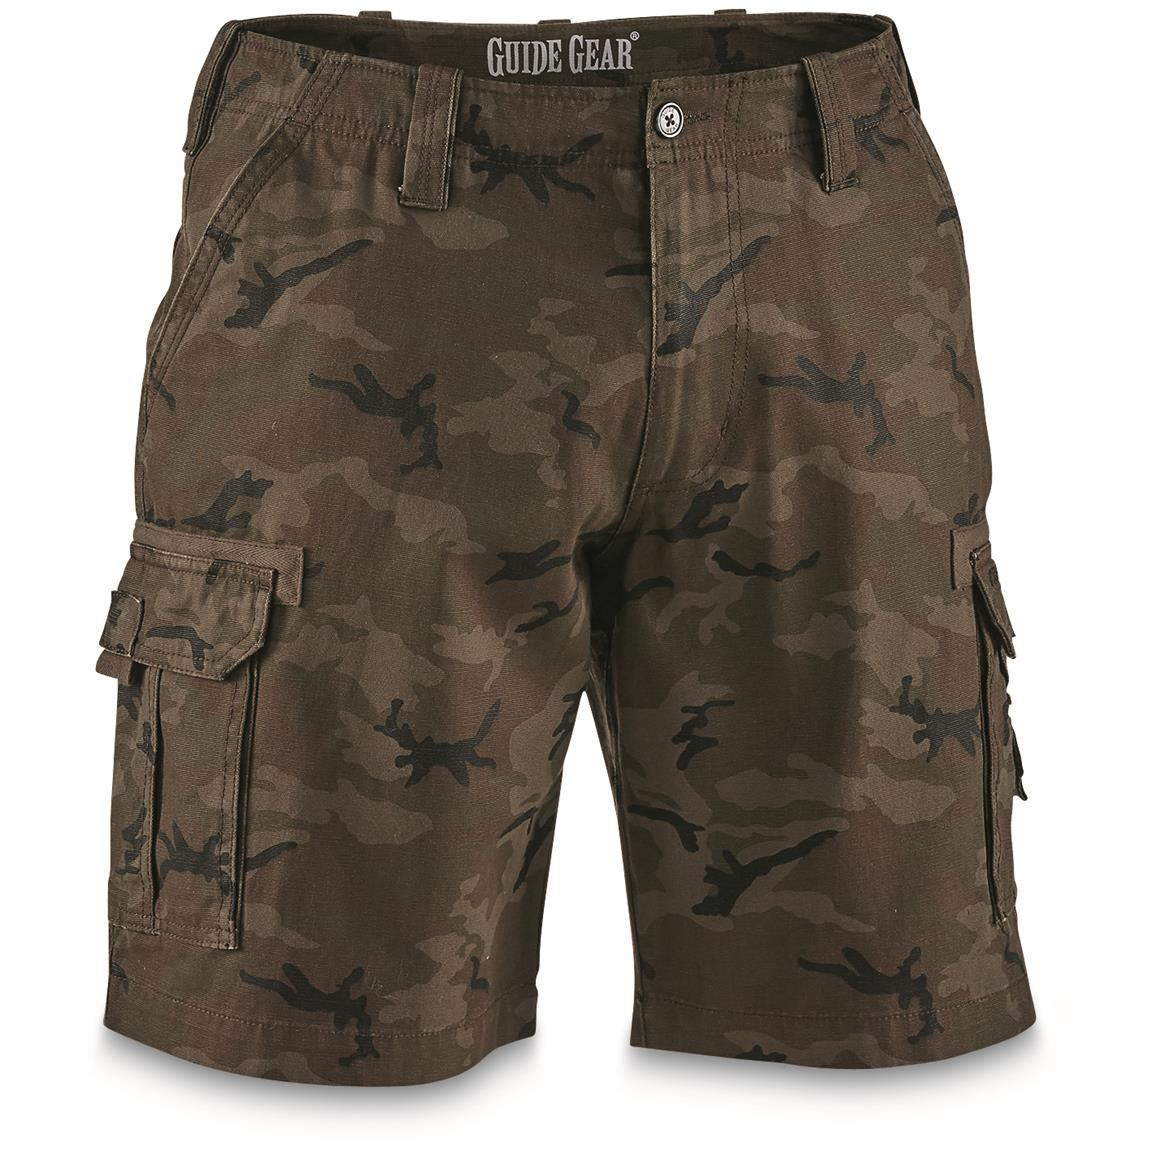 "Guide Gear Men's Outdoor Cargo Shorts, Camo, 10"" inseam"